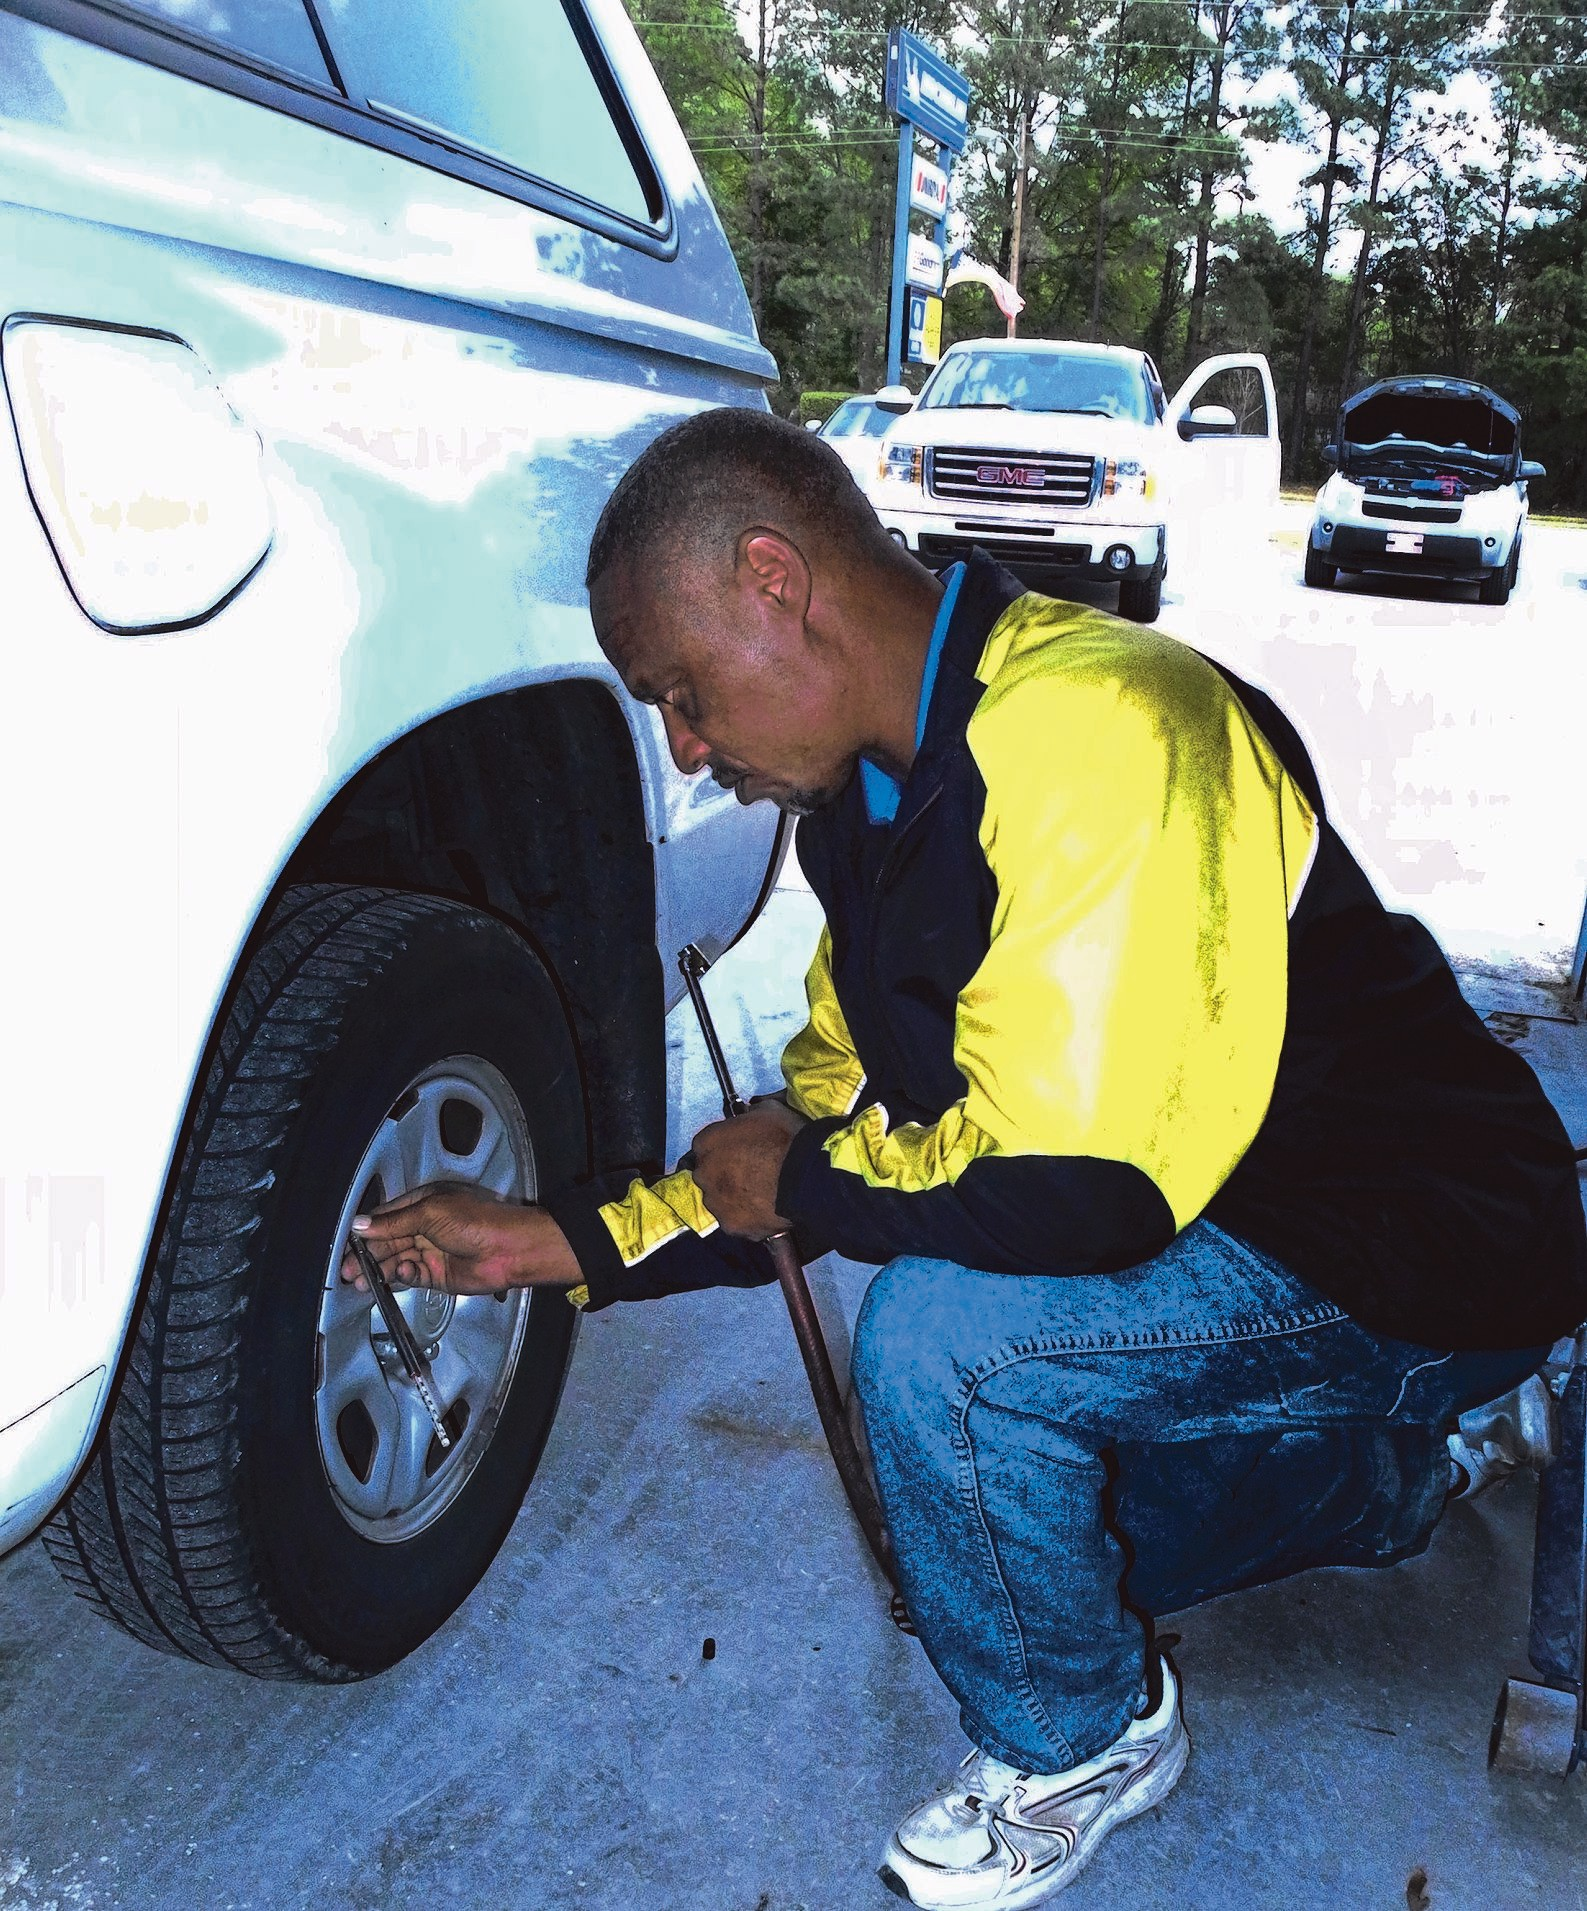 Eric Conyers with Ace Parker Tires checks a customer's tire recently. Air pressure in tires can affect gas mileage significantly and should be checked before Labor Day travel.